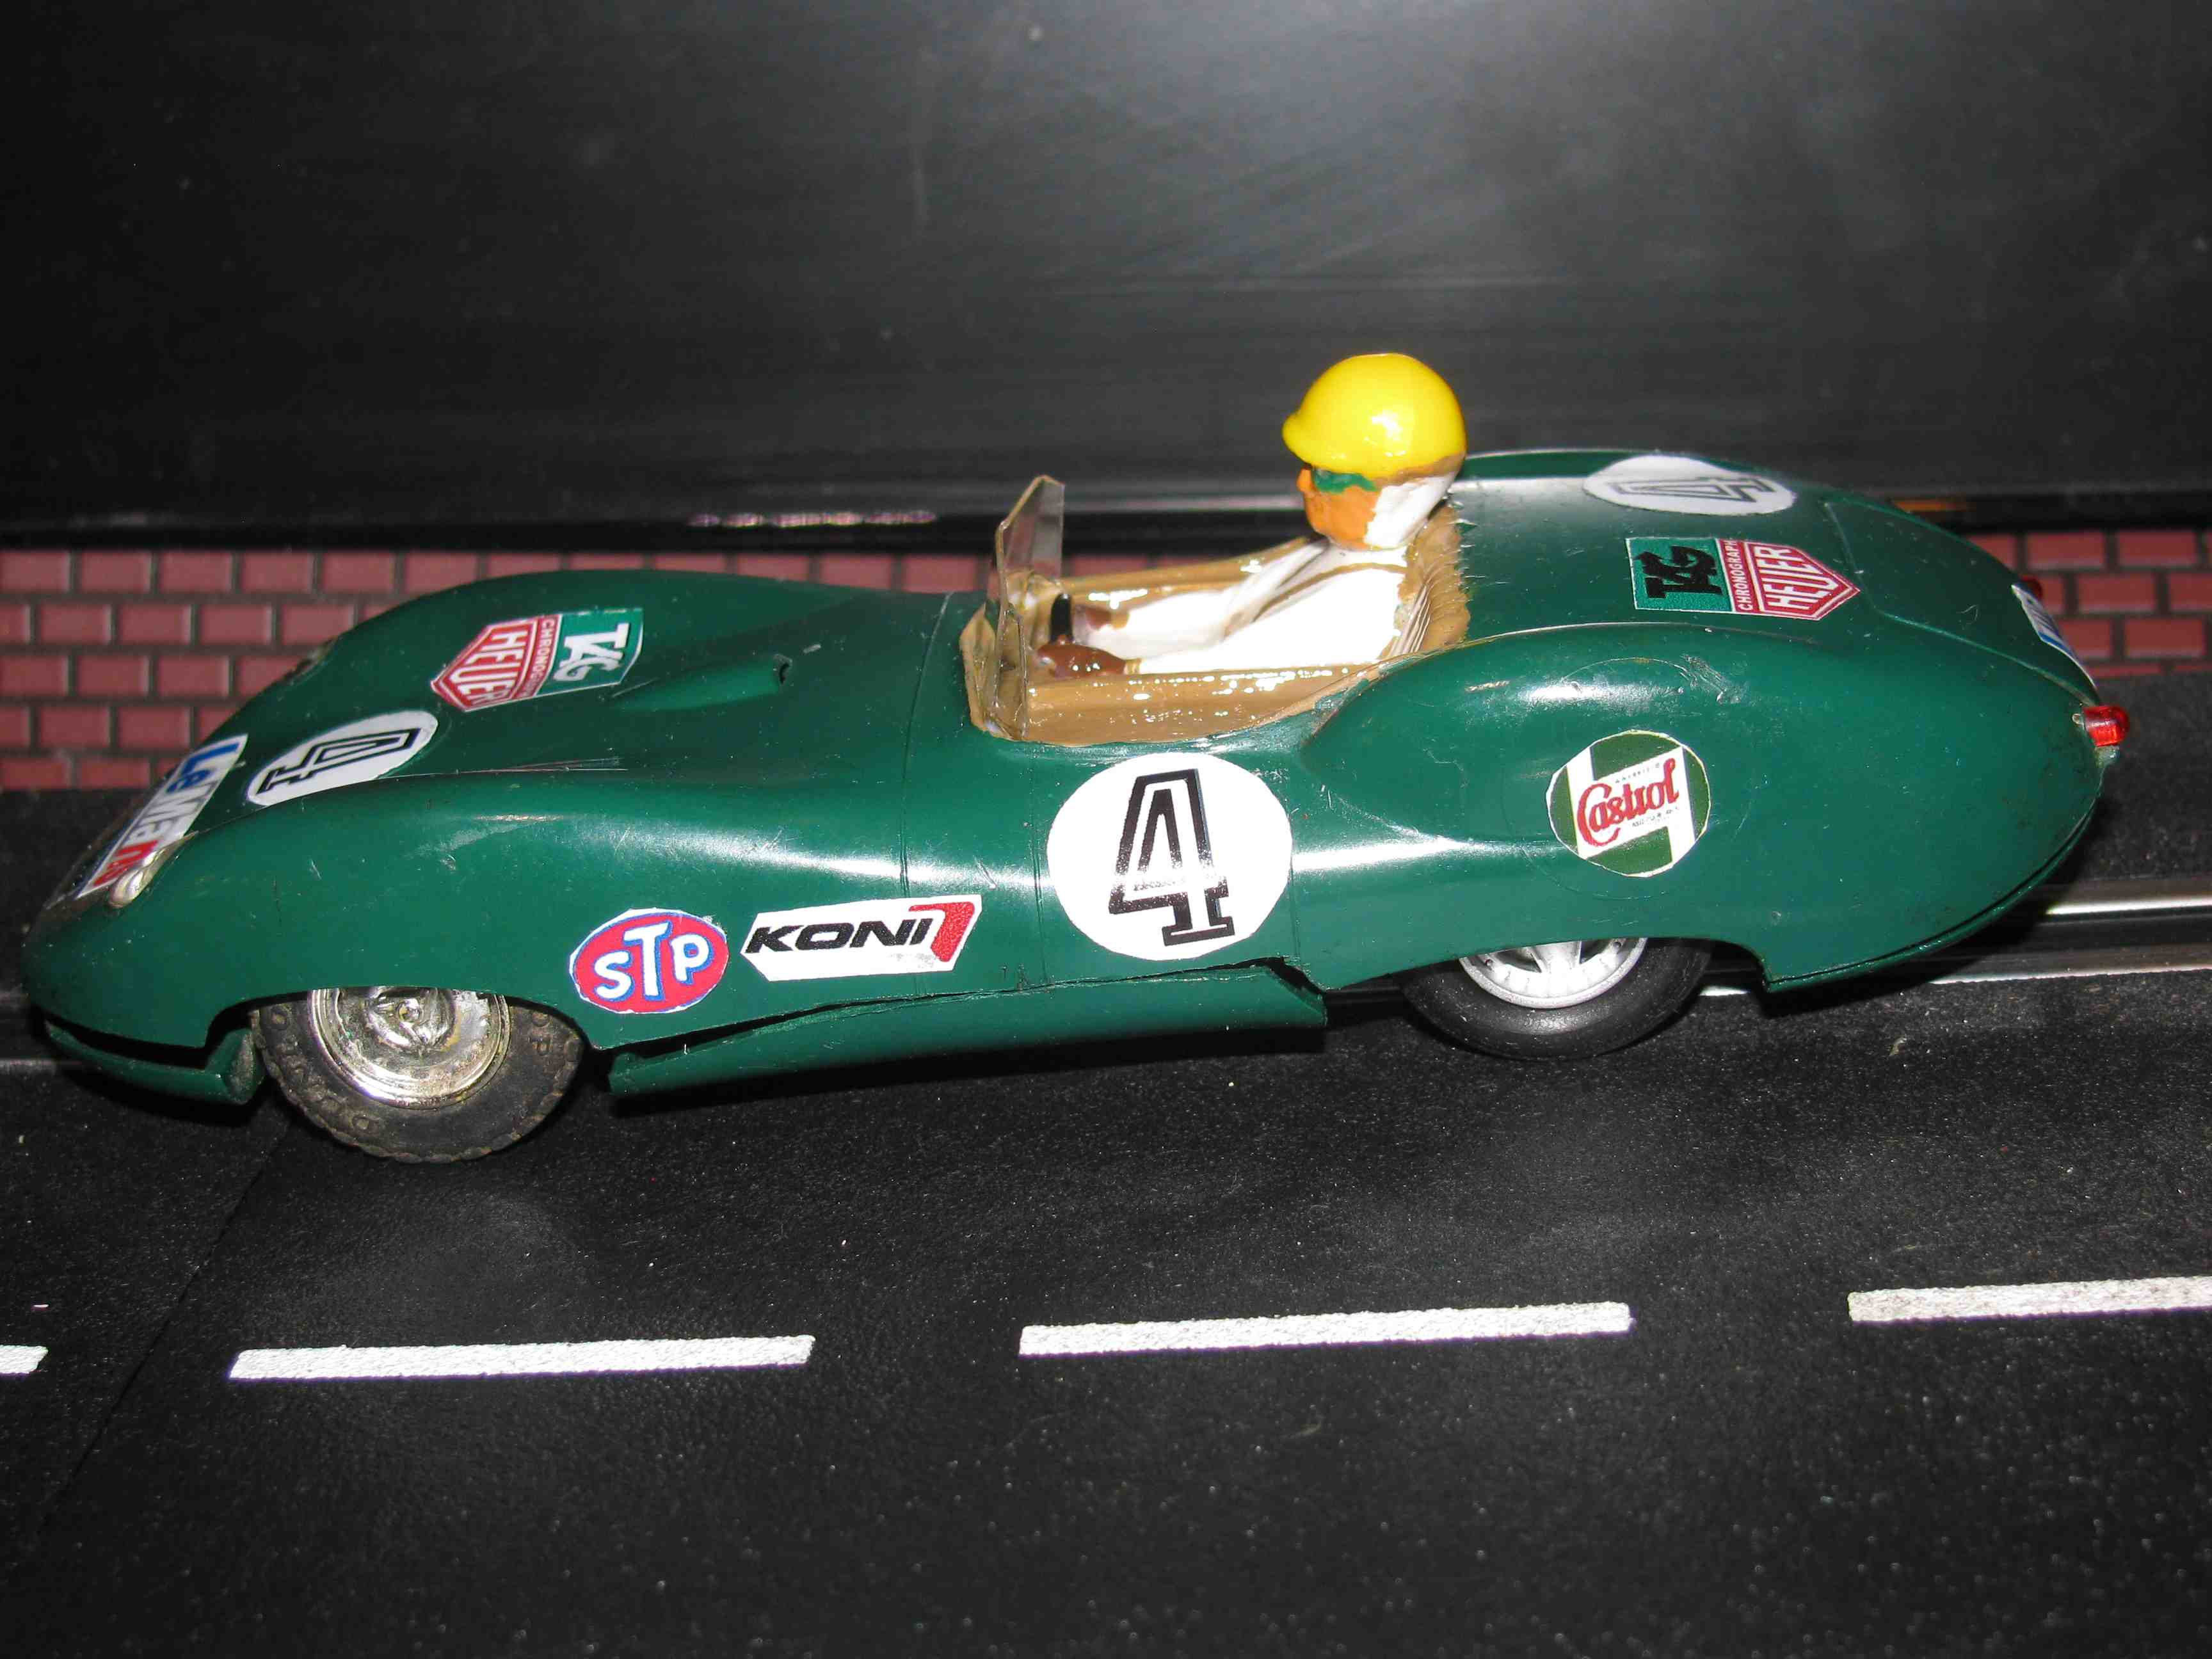 * SOLD * Very Rare and Vintage Scalextric Triang Lister Powered by Jaguar Slot Car 1/32 Scale